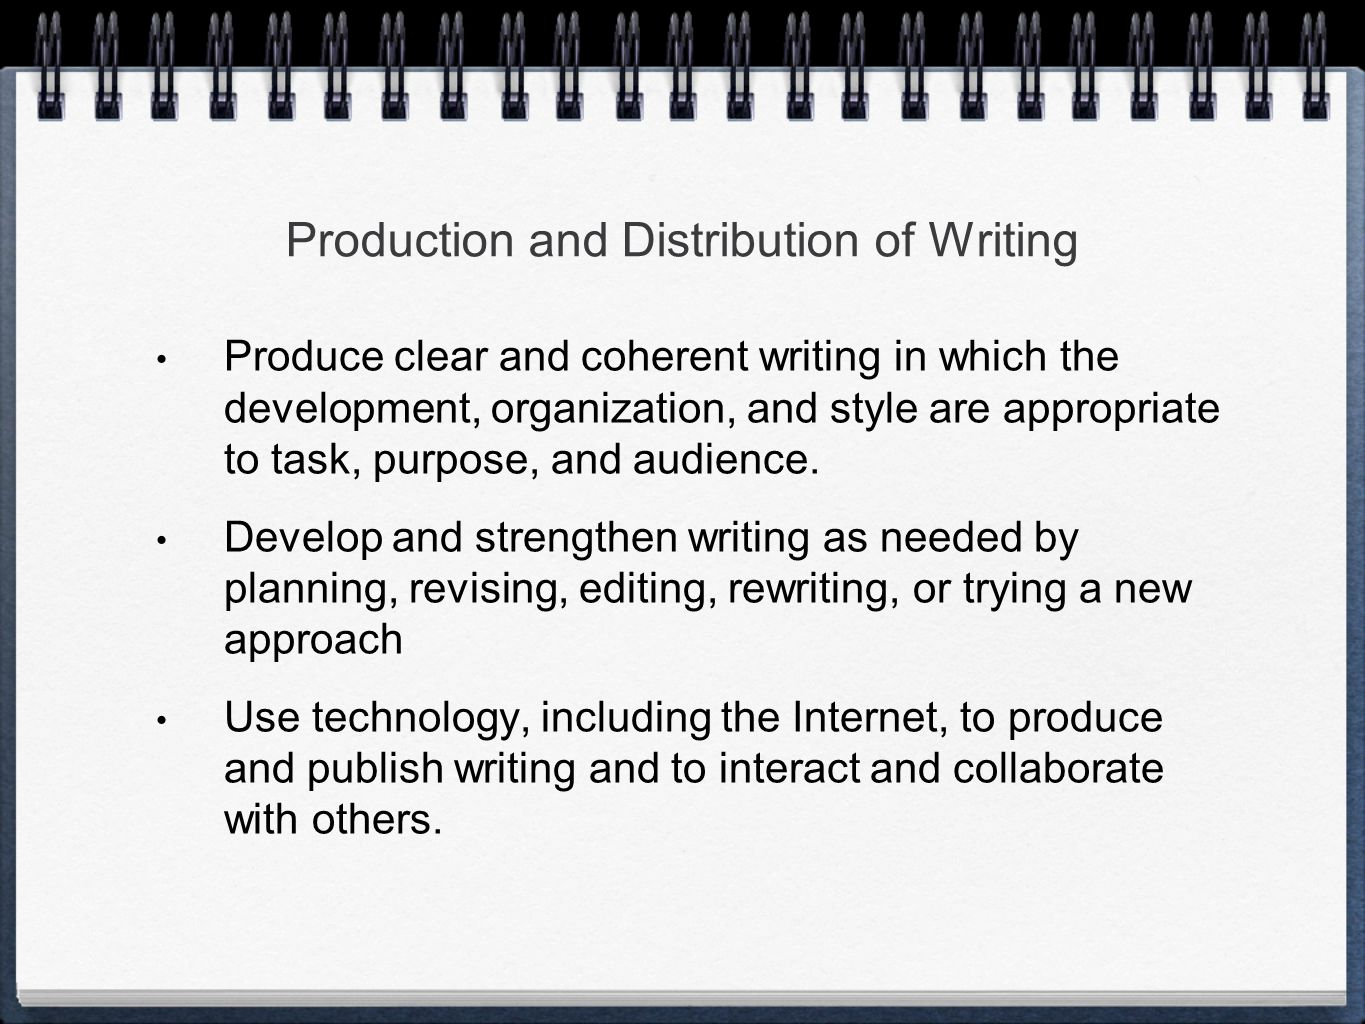 Production and Distribution of Writing Produce clear and coherent writing in which the development, organization, and style are appropriate to task, purpose, and audience.